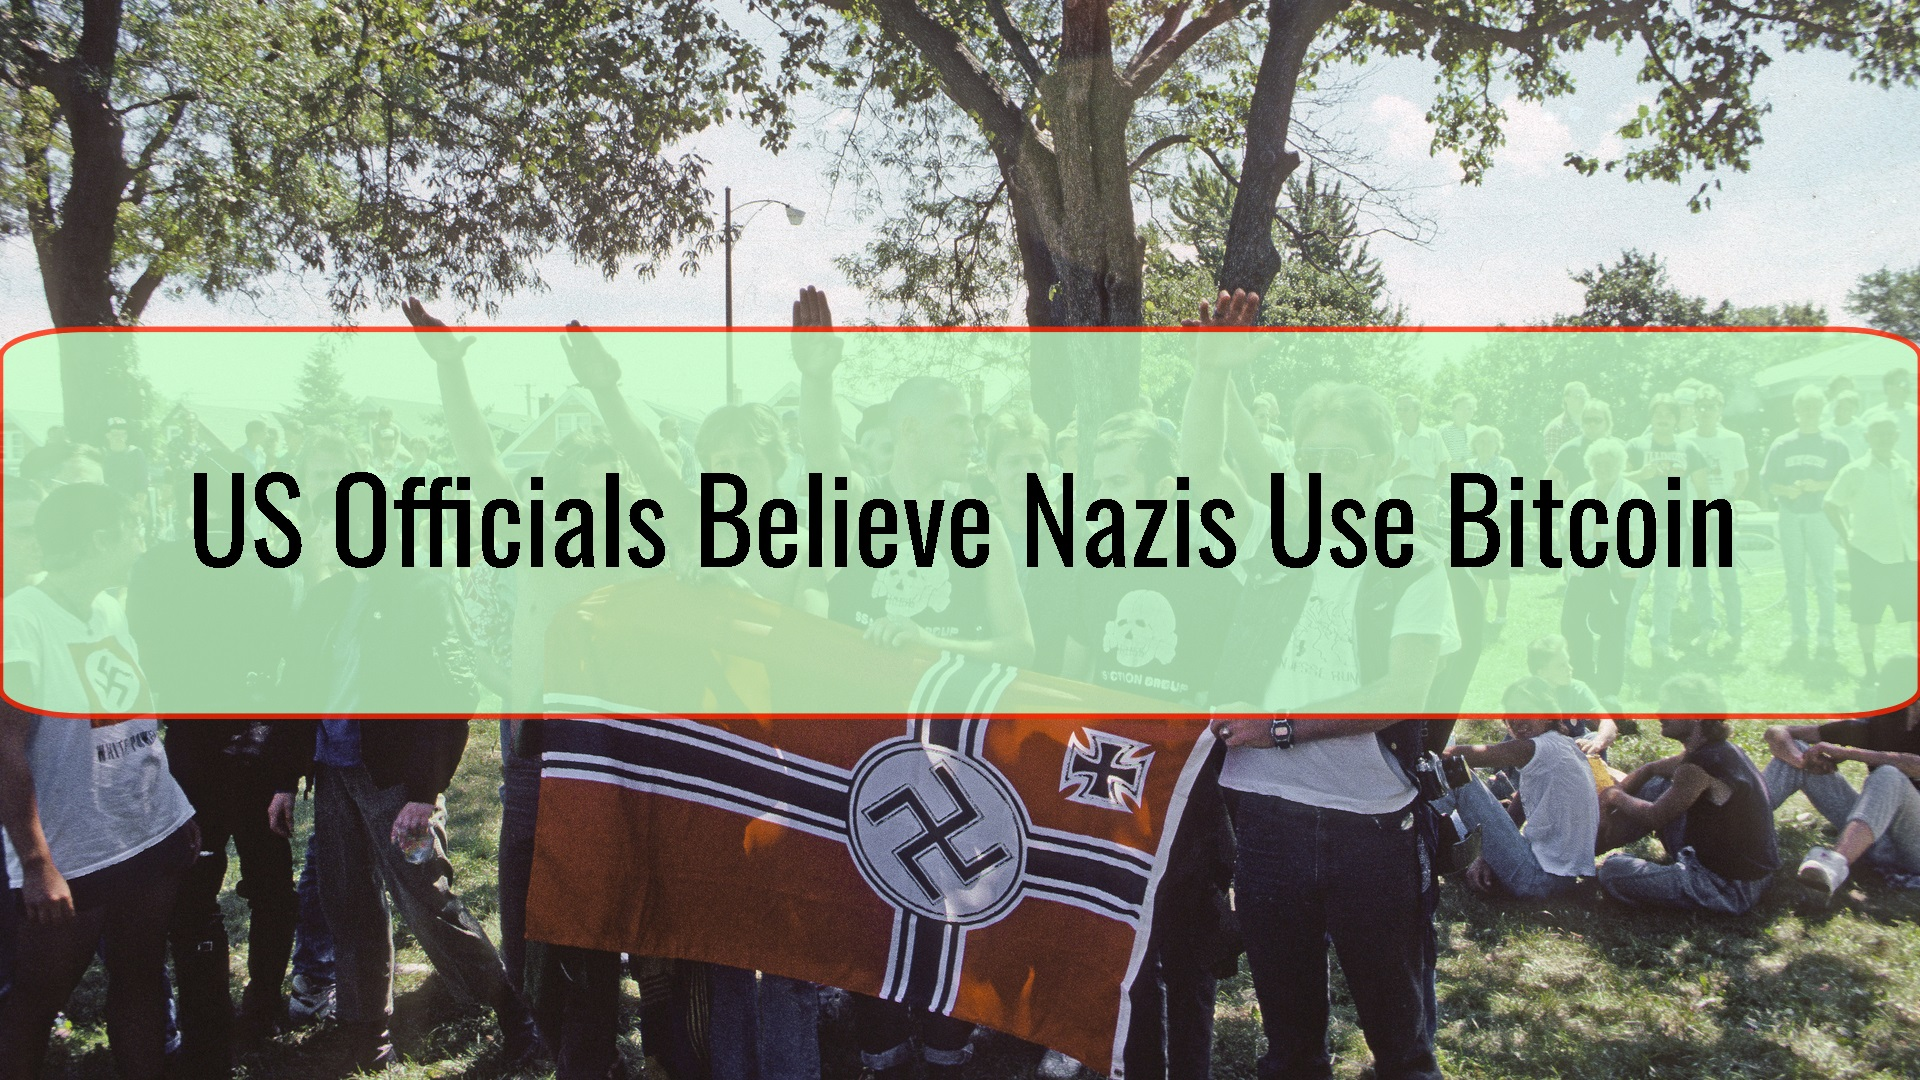 US Officials Believe Nazis Use Bitcoin